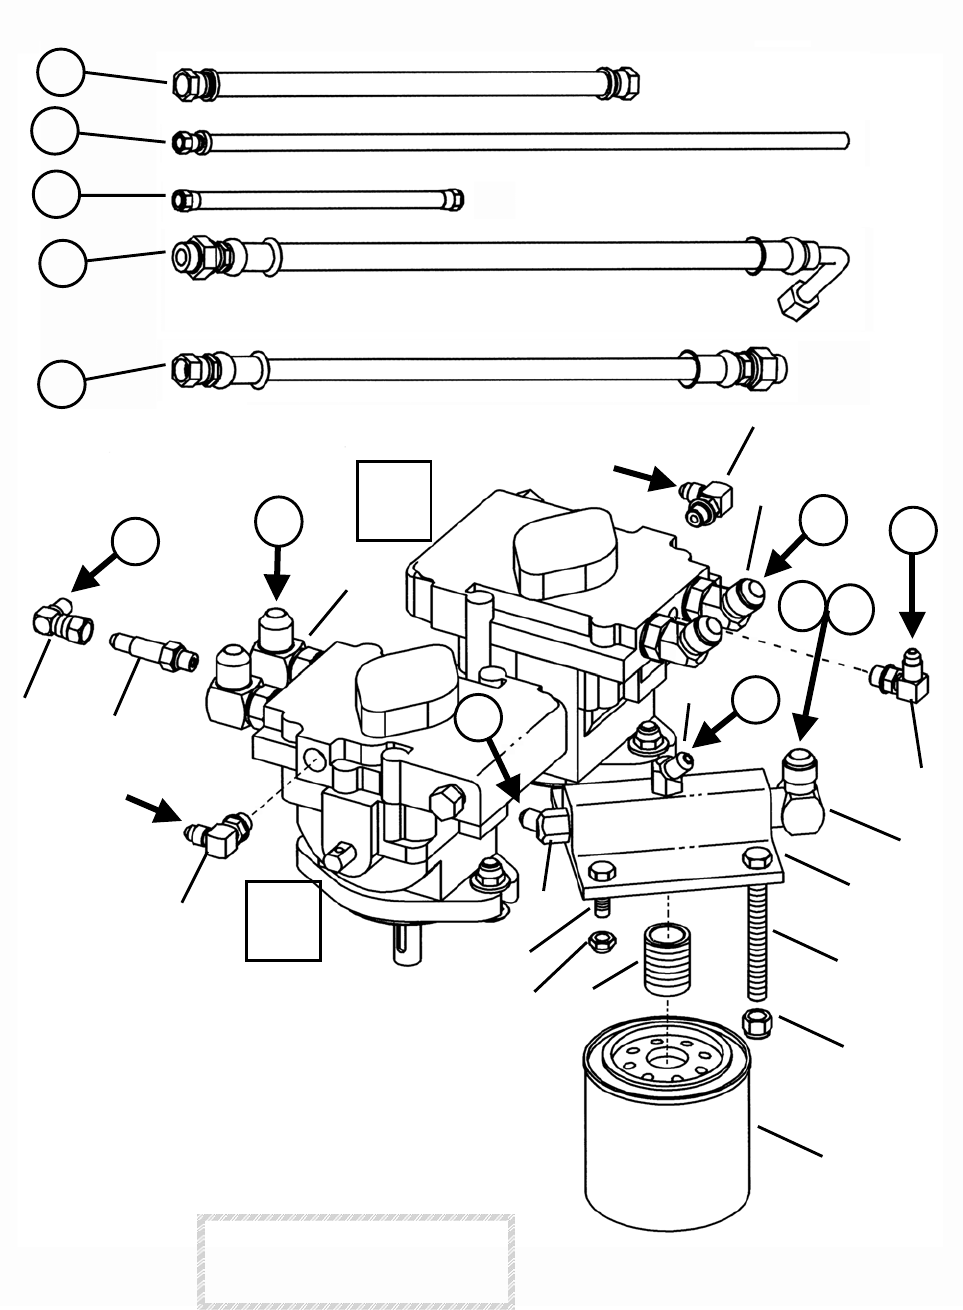 Parts Manual Pro Hydro Spa521 06928 Kawasaki Fc420v 14 Hp Wiring Diagram 16